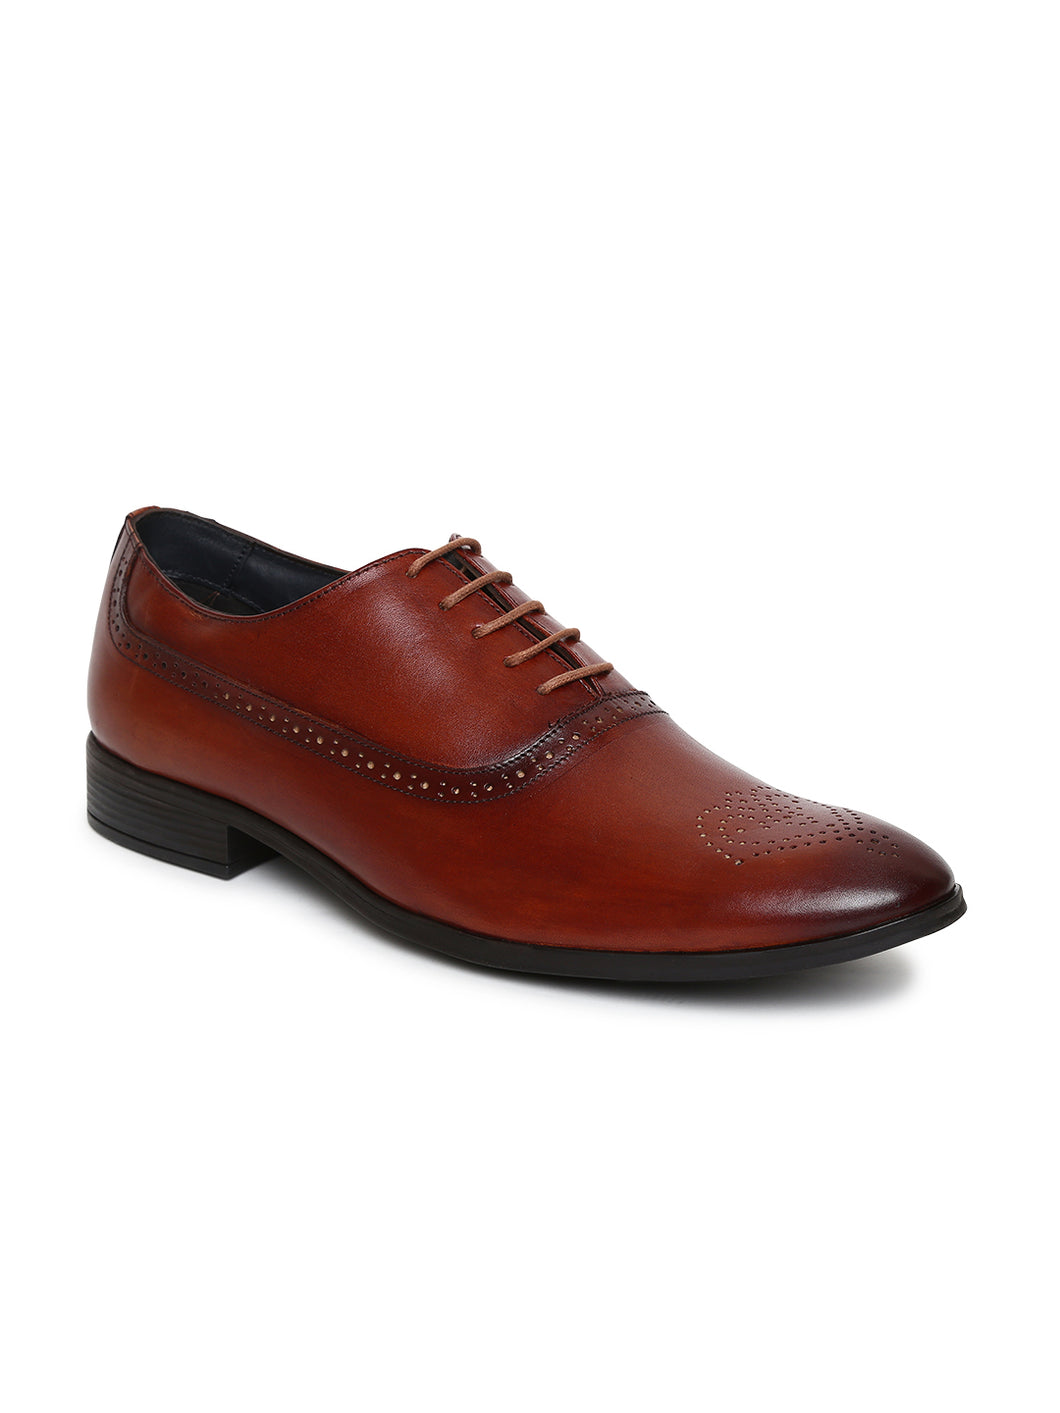 Teakwood Genuine Leather Brown Shoes